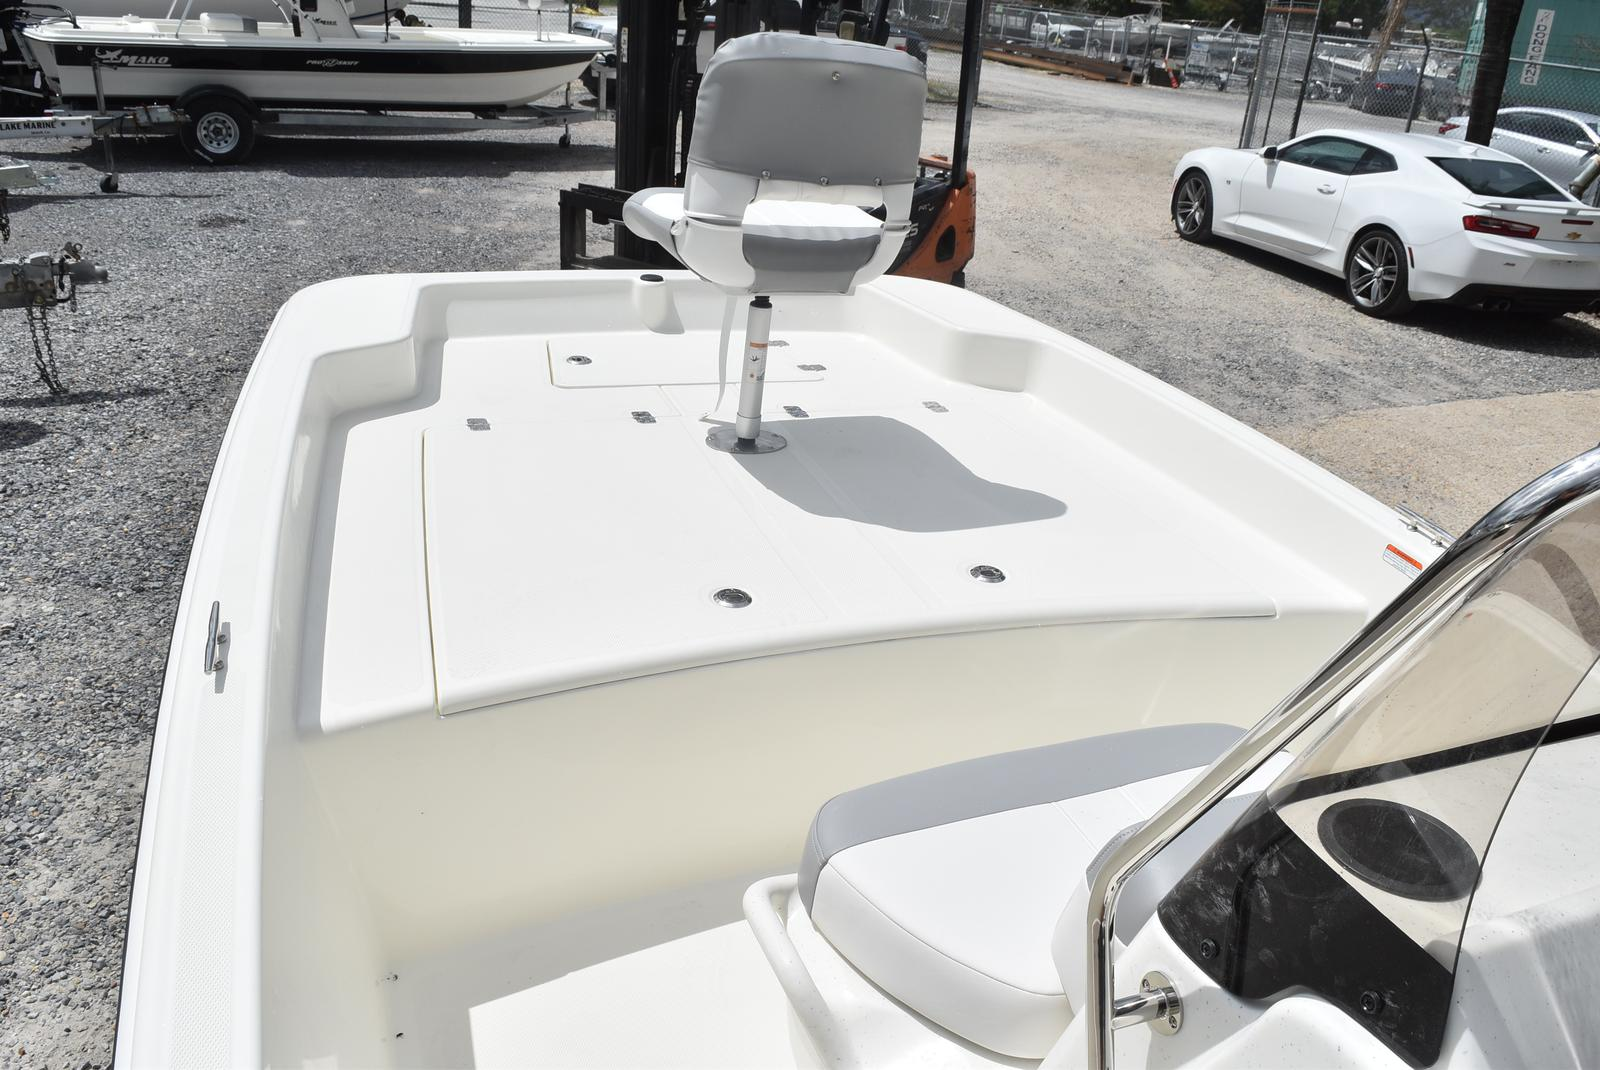 2020 Mako boat for sale, model of the boat is Pro Skiff 17, 75 ELPT & Image # 449 of 702